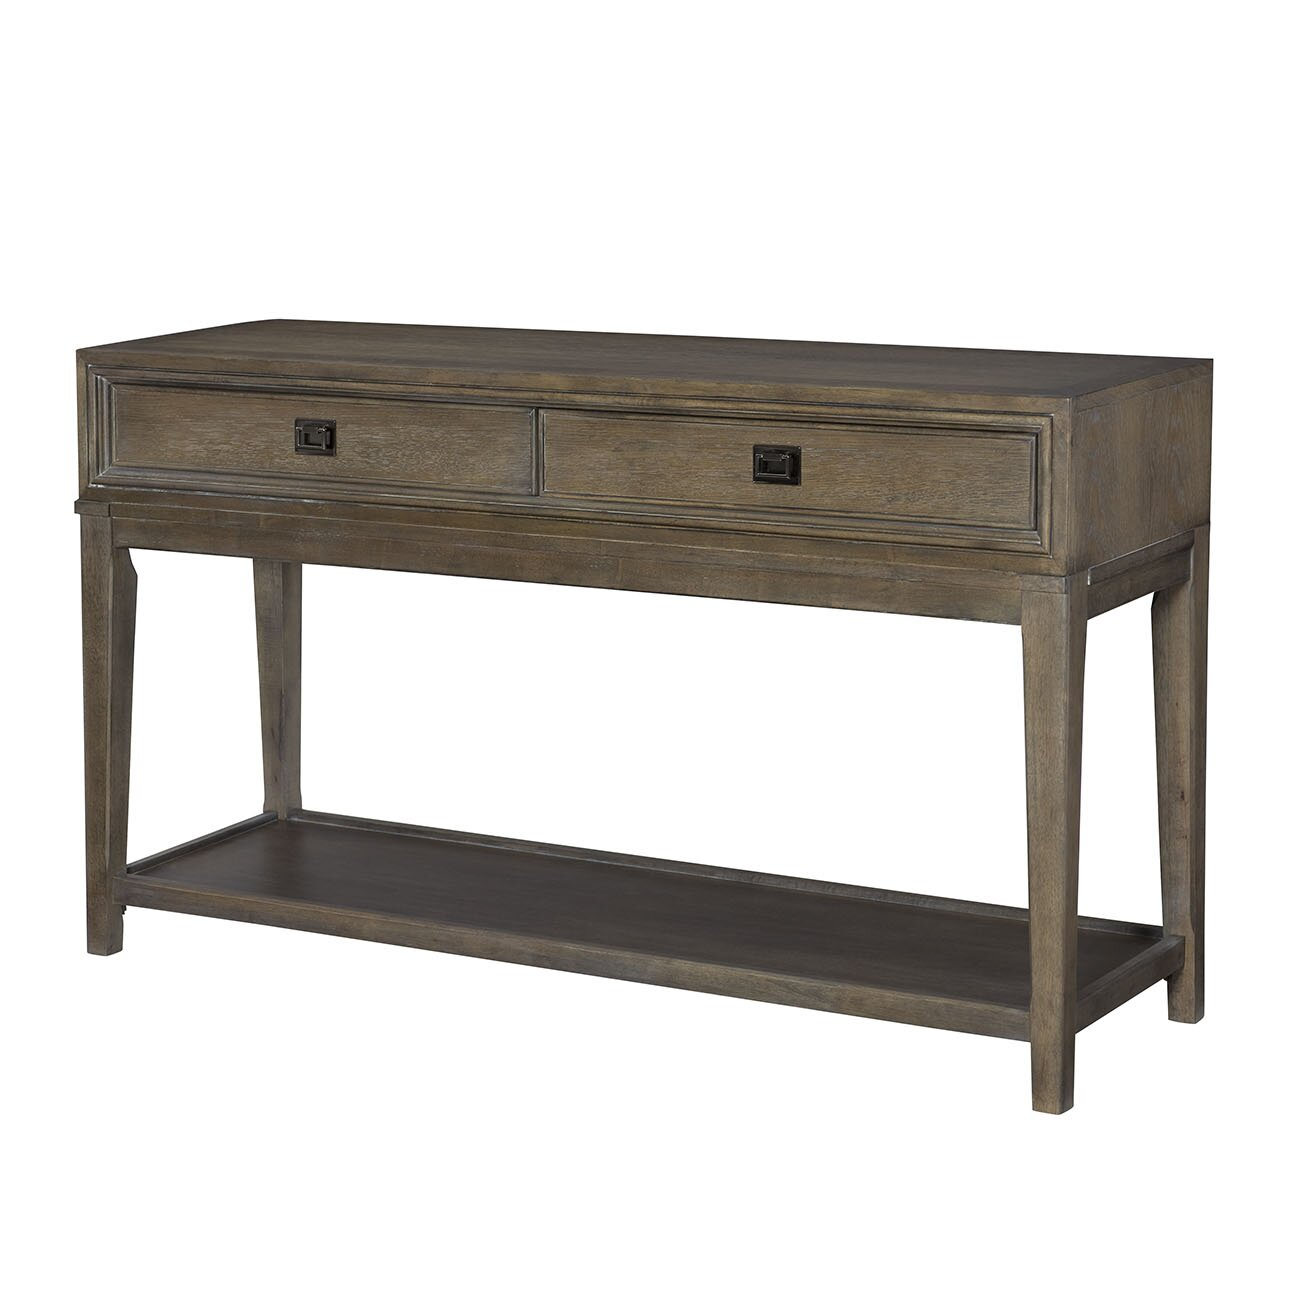 Hammary Park Studio Console Table Reviews Wayfair